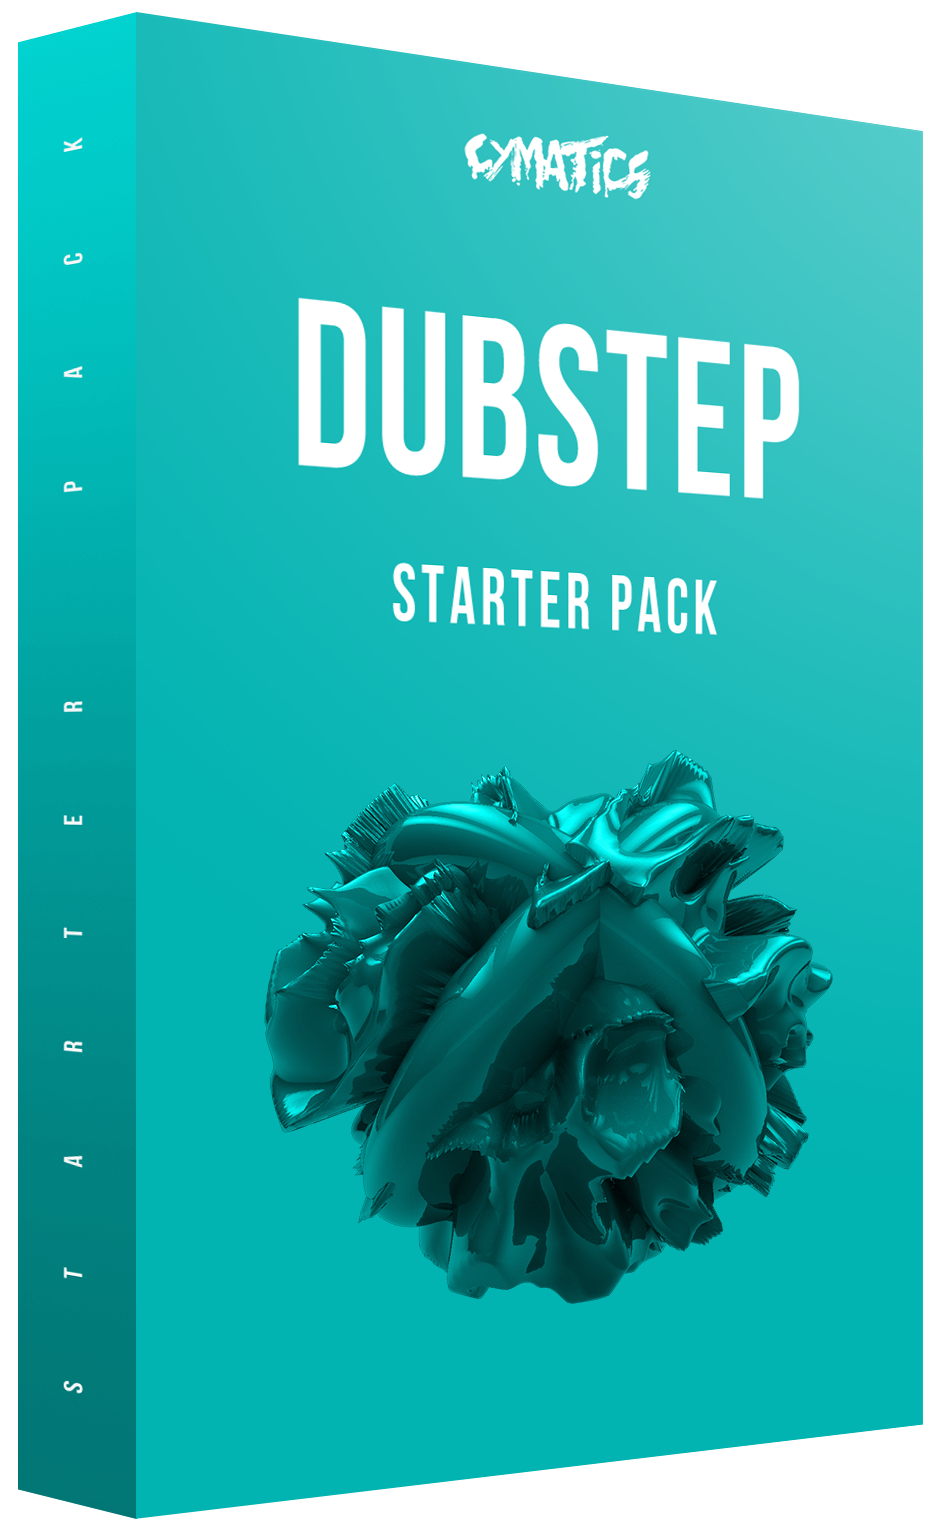 Free Download - Dubstep Starter Pack – Cymatics fm